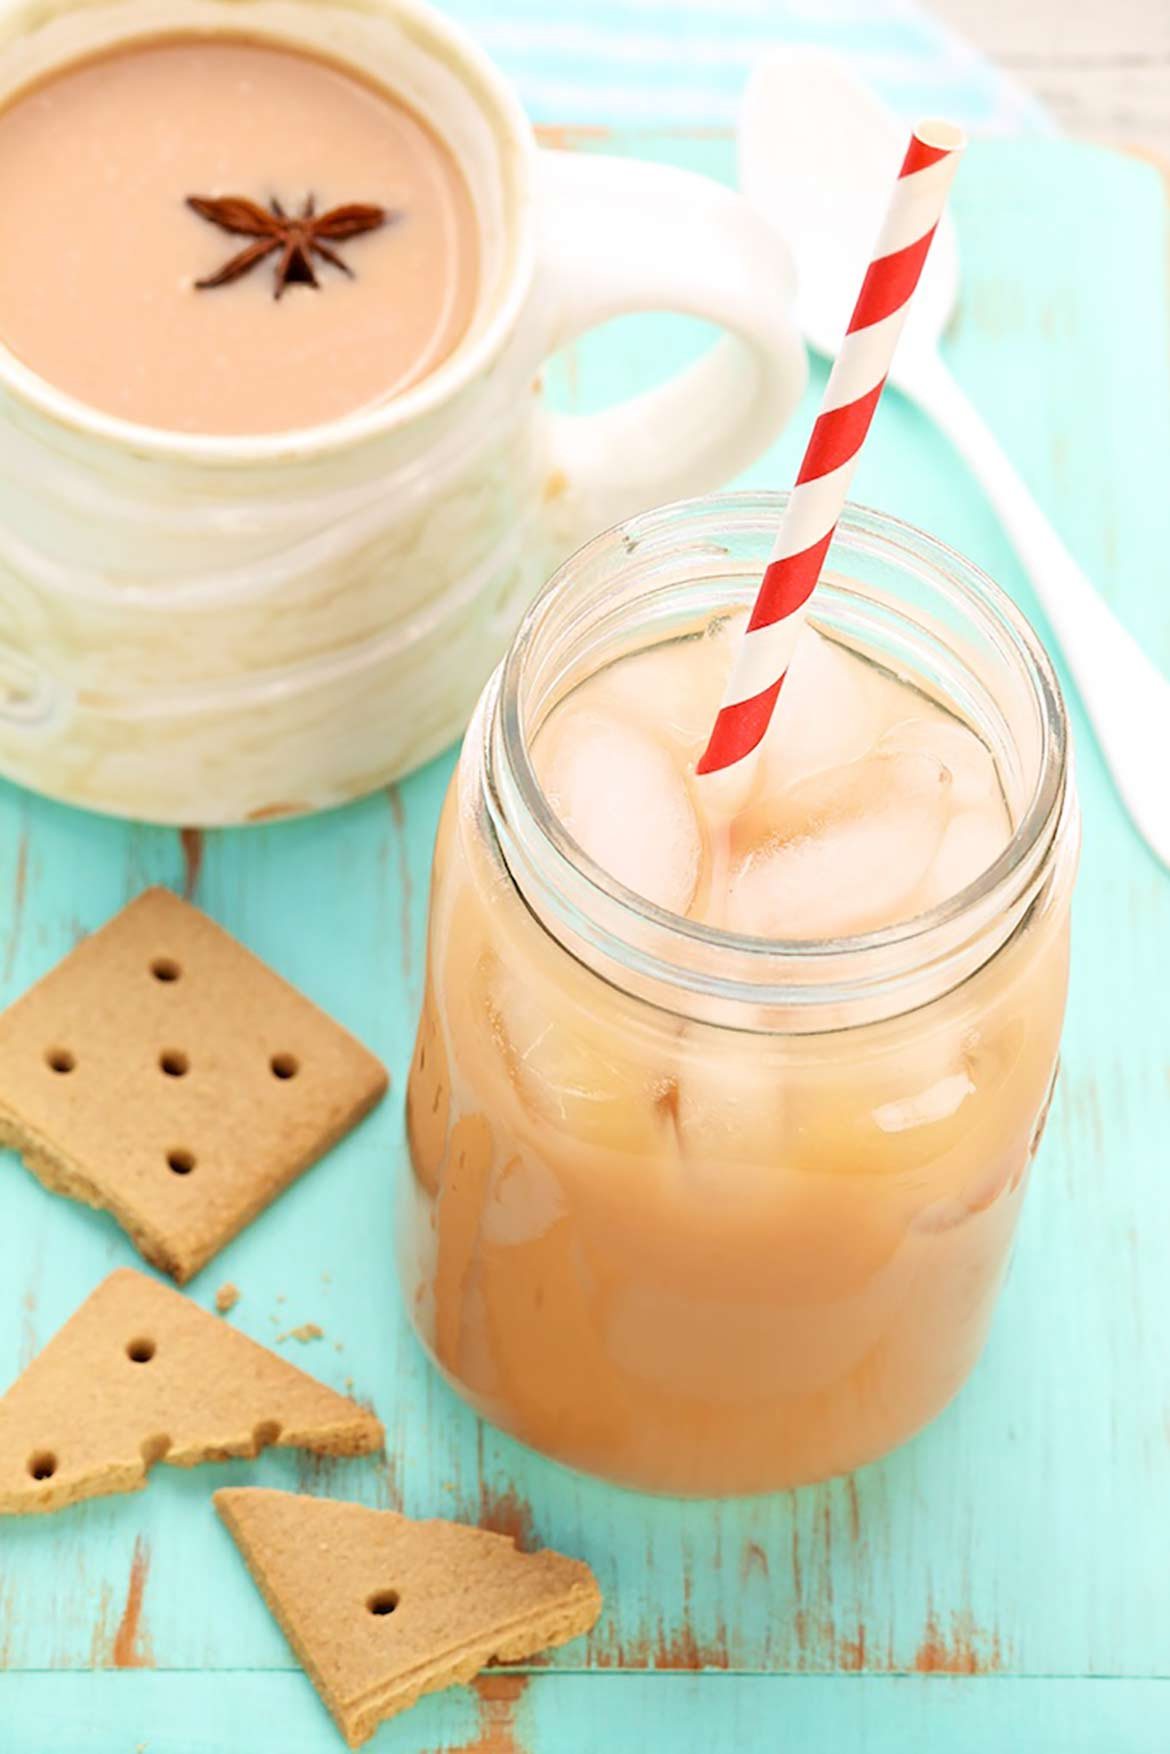 Make-ahead concentrate tastes better than what you often get in a fancy cafe and for a fraction of the price. Perfect for hot and cold chai lattes whenever a craving hits!